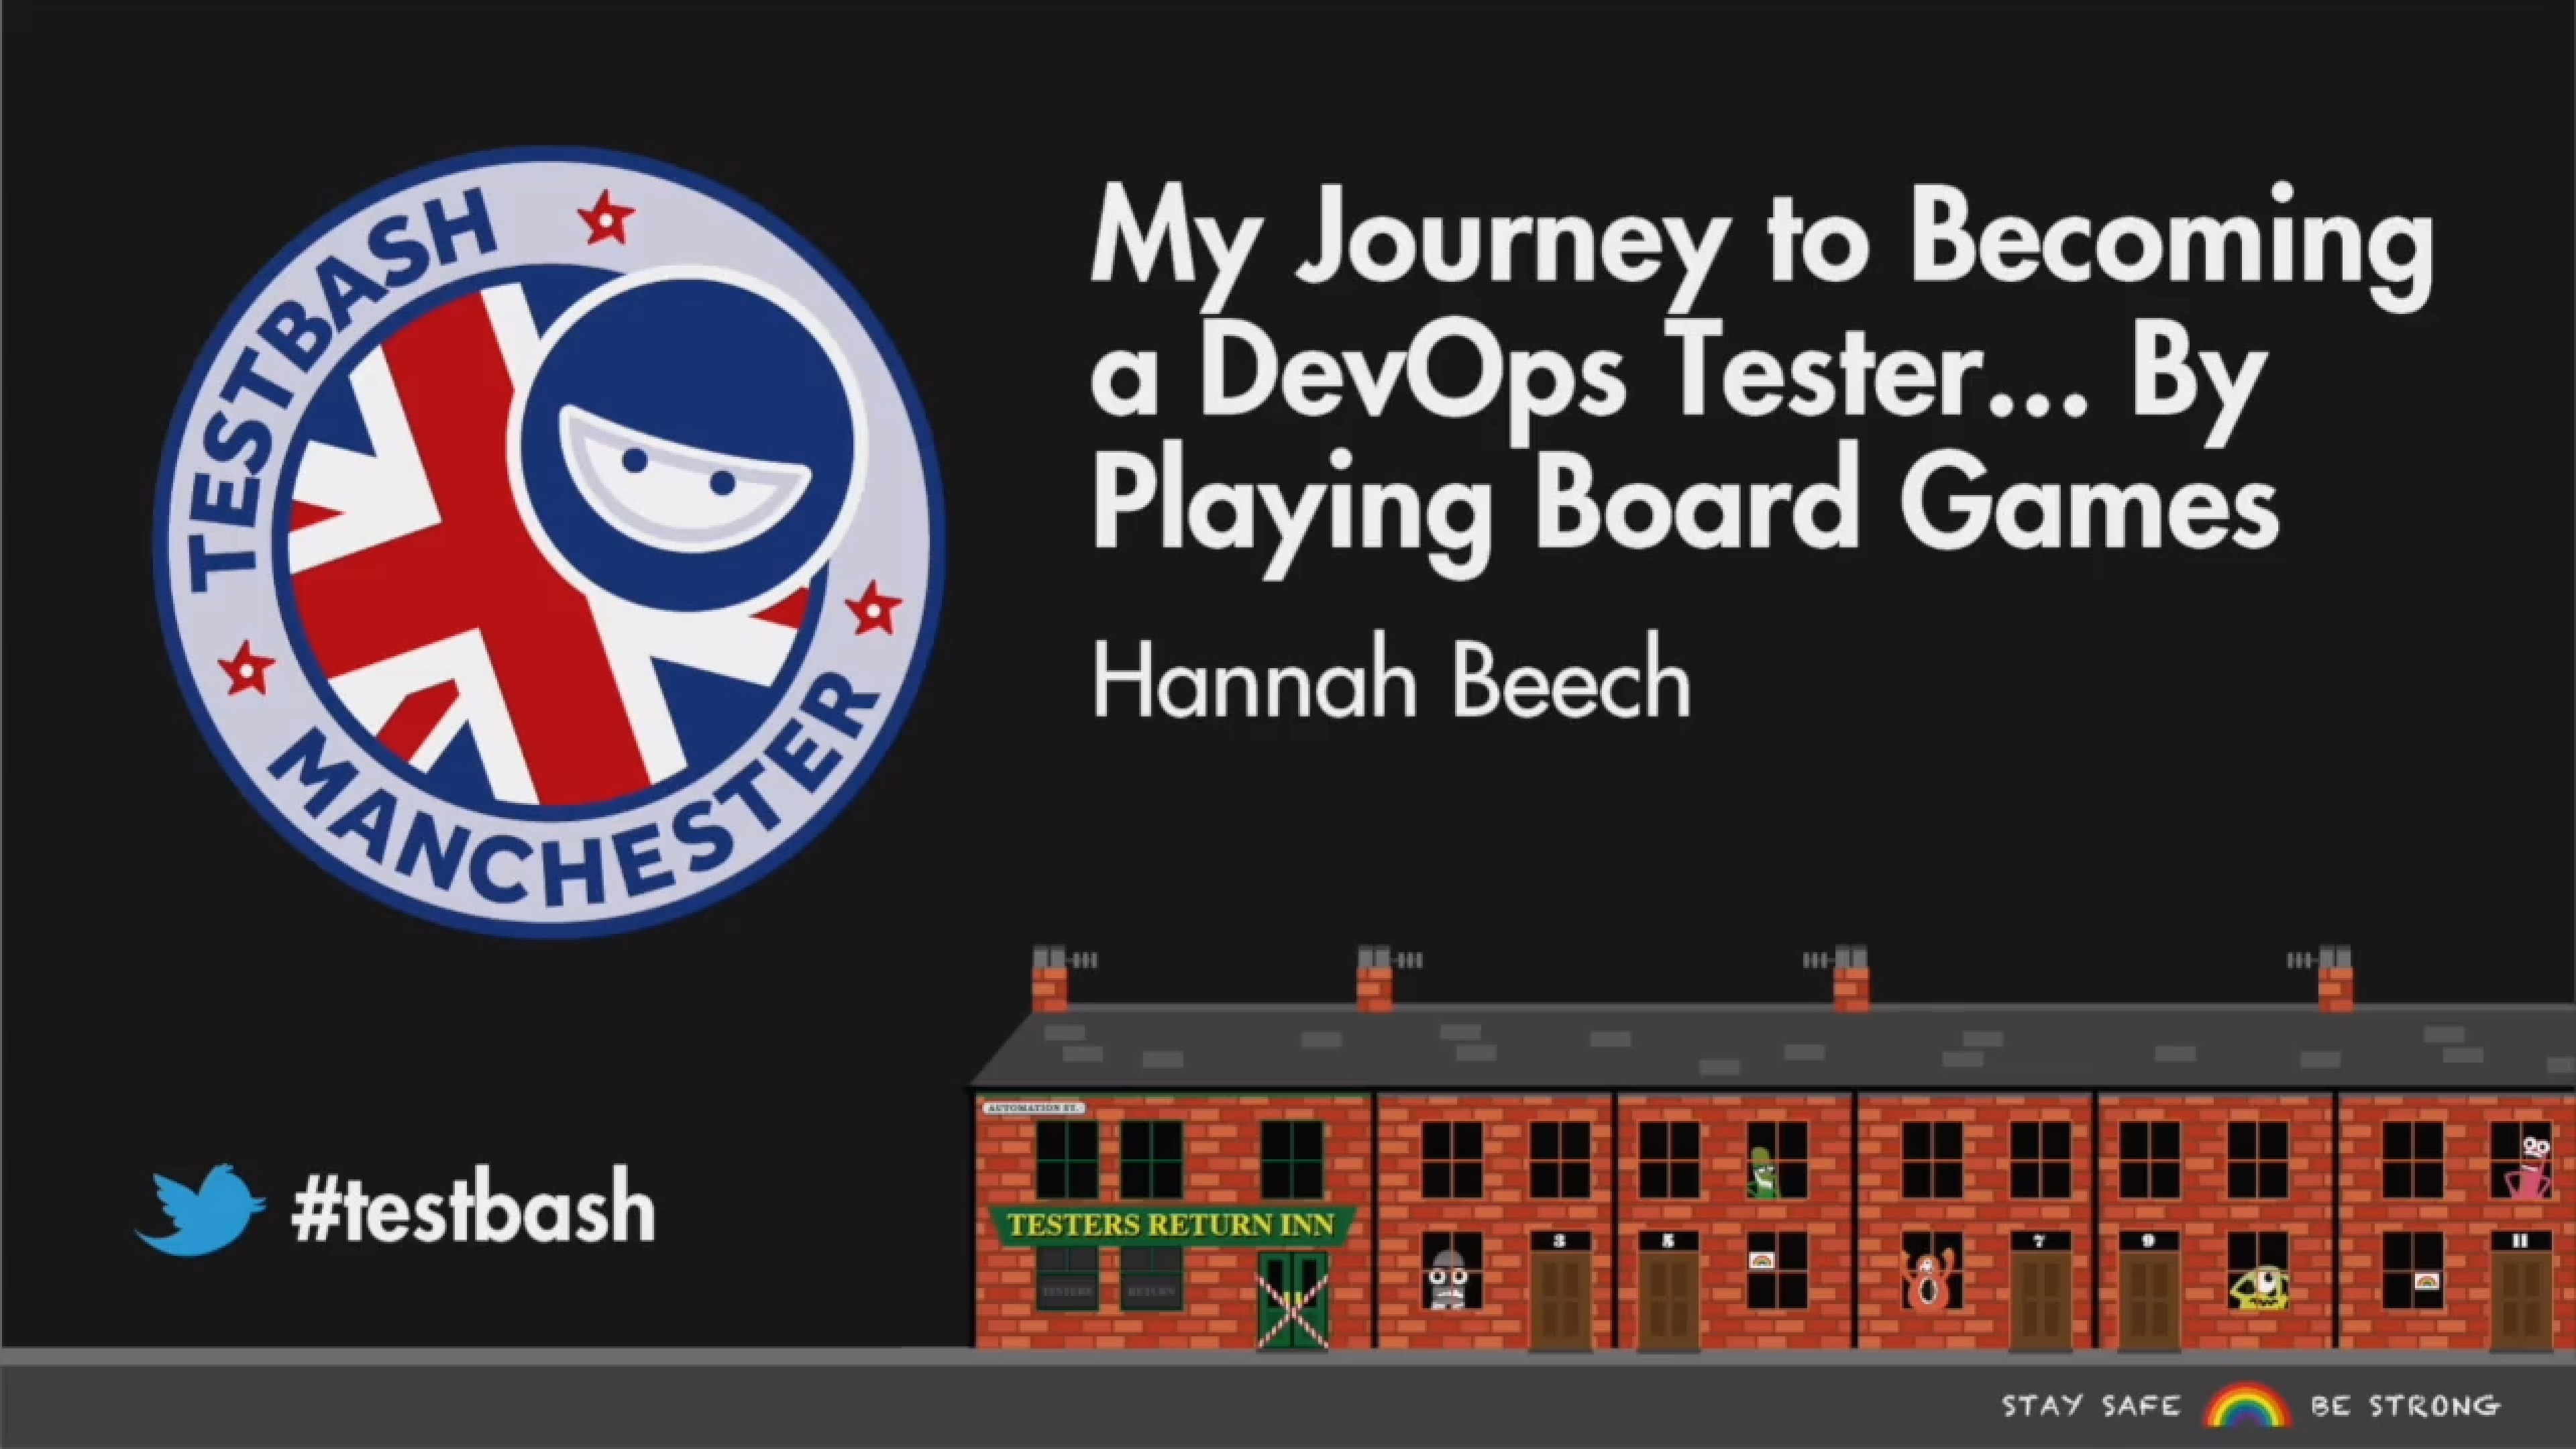 My Journey to Becoming a DevOps Tester... By Playing Board Games - Hannah Beech